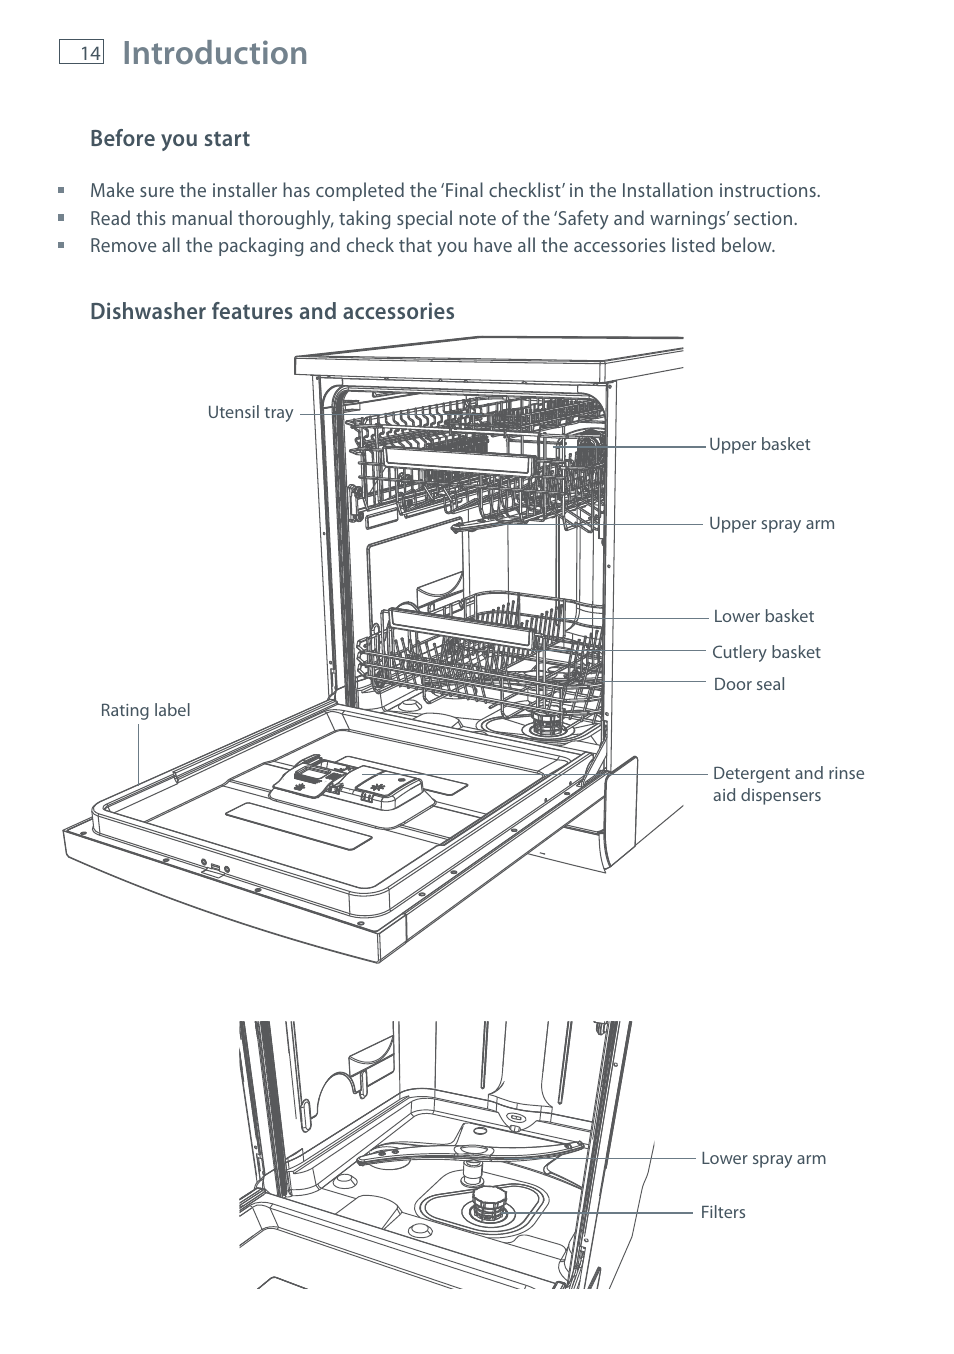 Introduction Fisher Paykel Dw60ce User Manual Page 16 48. Introduction Fisher Paykel Dw60ce User Manual Page 16 48. Fisher. Fisher And Paykel Dishwasher Diagram At Scoala.co